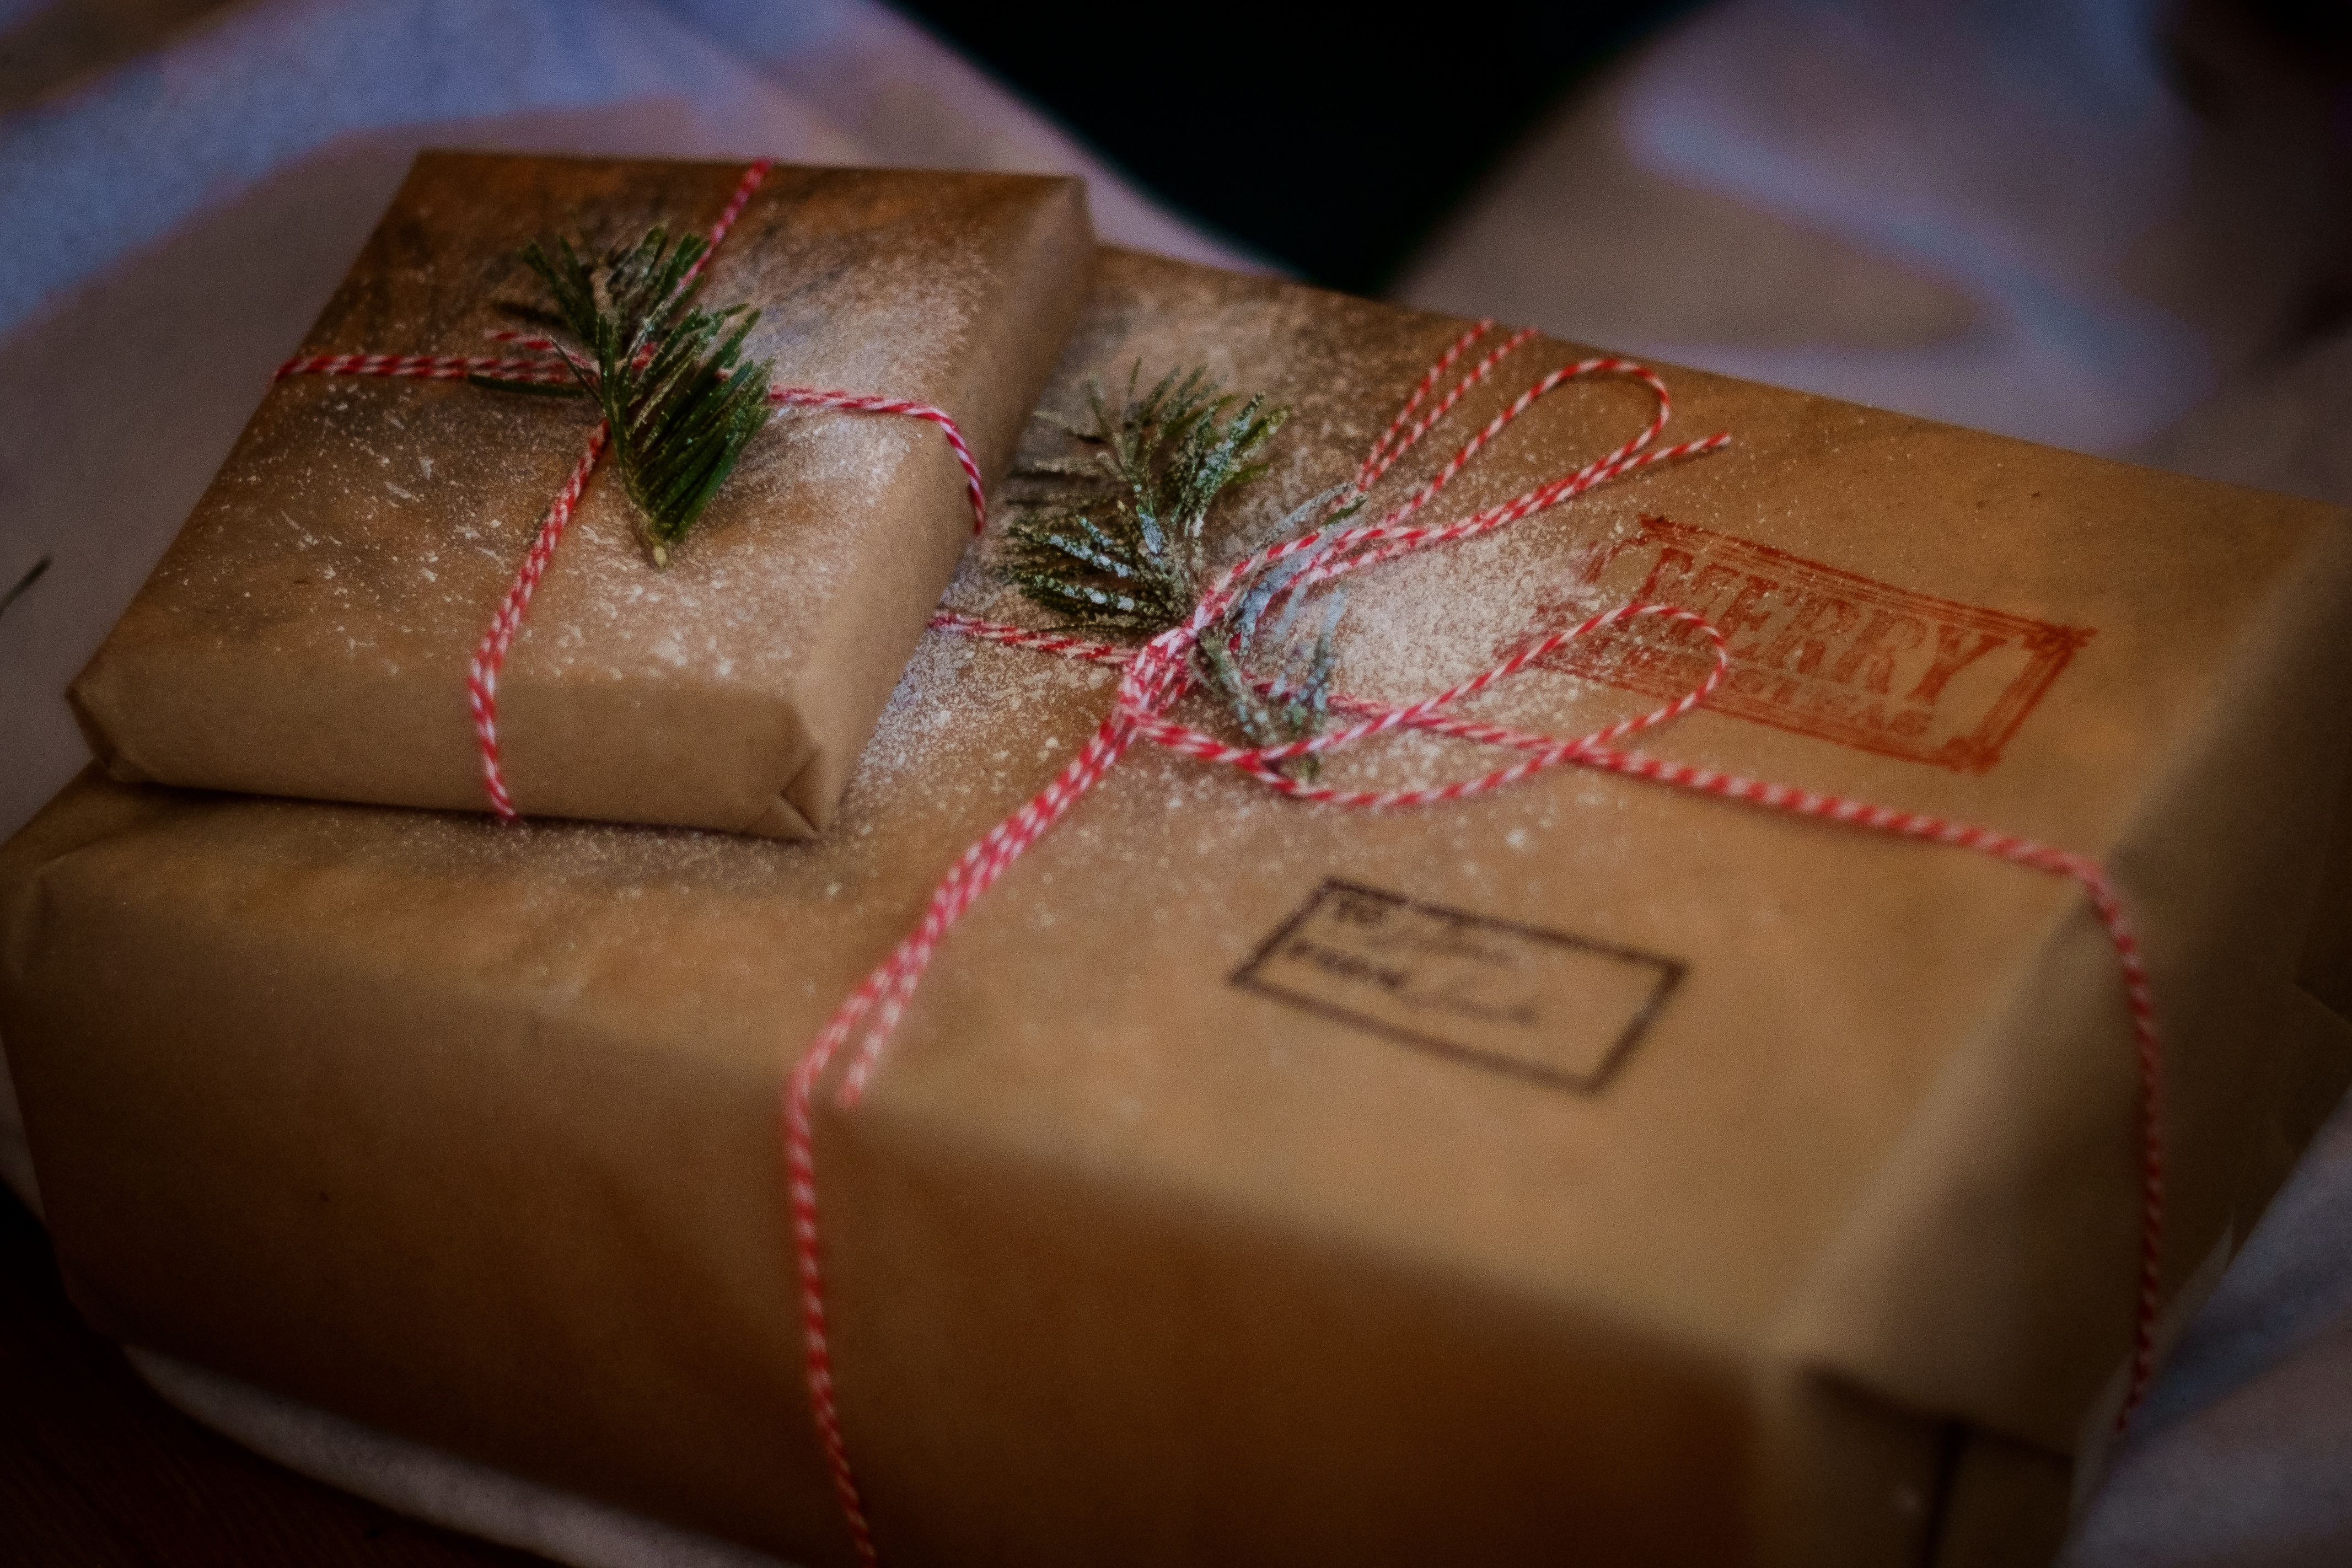 How to win at giving (The Perfect Christmas Gift Ideas)